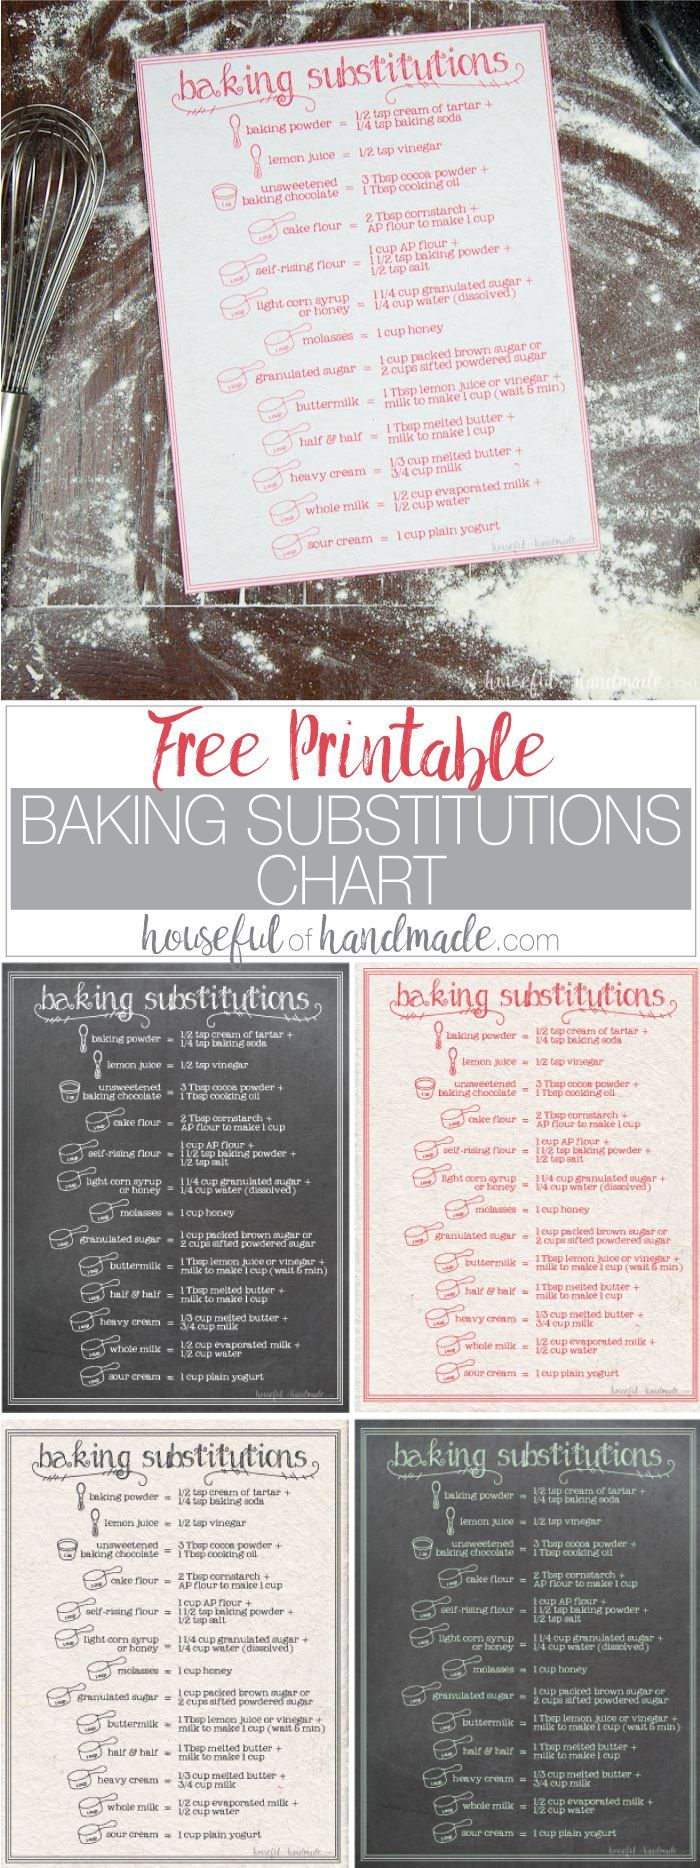 I need this for my kitchen! If you love to bake, but hate running to store for last minute ingredients, this free printable baking substitutions chart is perfect for you. There are a variety of ingredient substitutions so you can keep baking even when you are out of something. | http://Housefulofhandmade.com